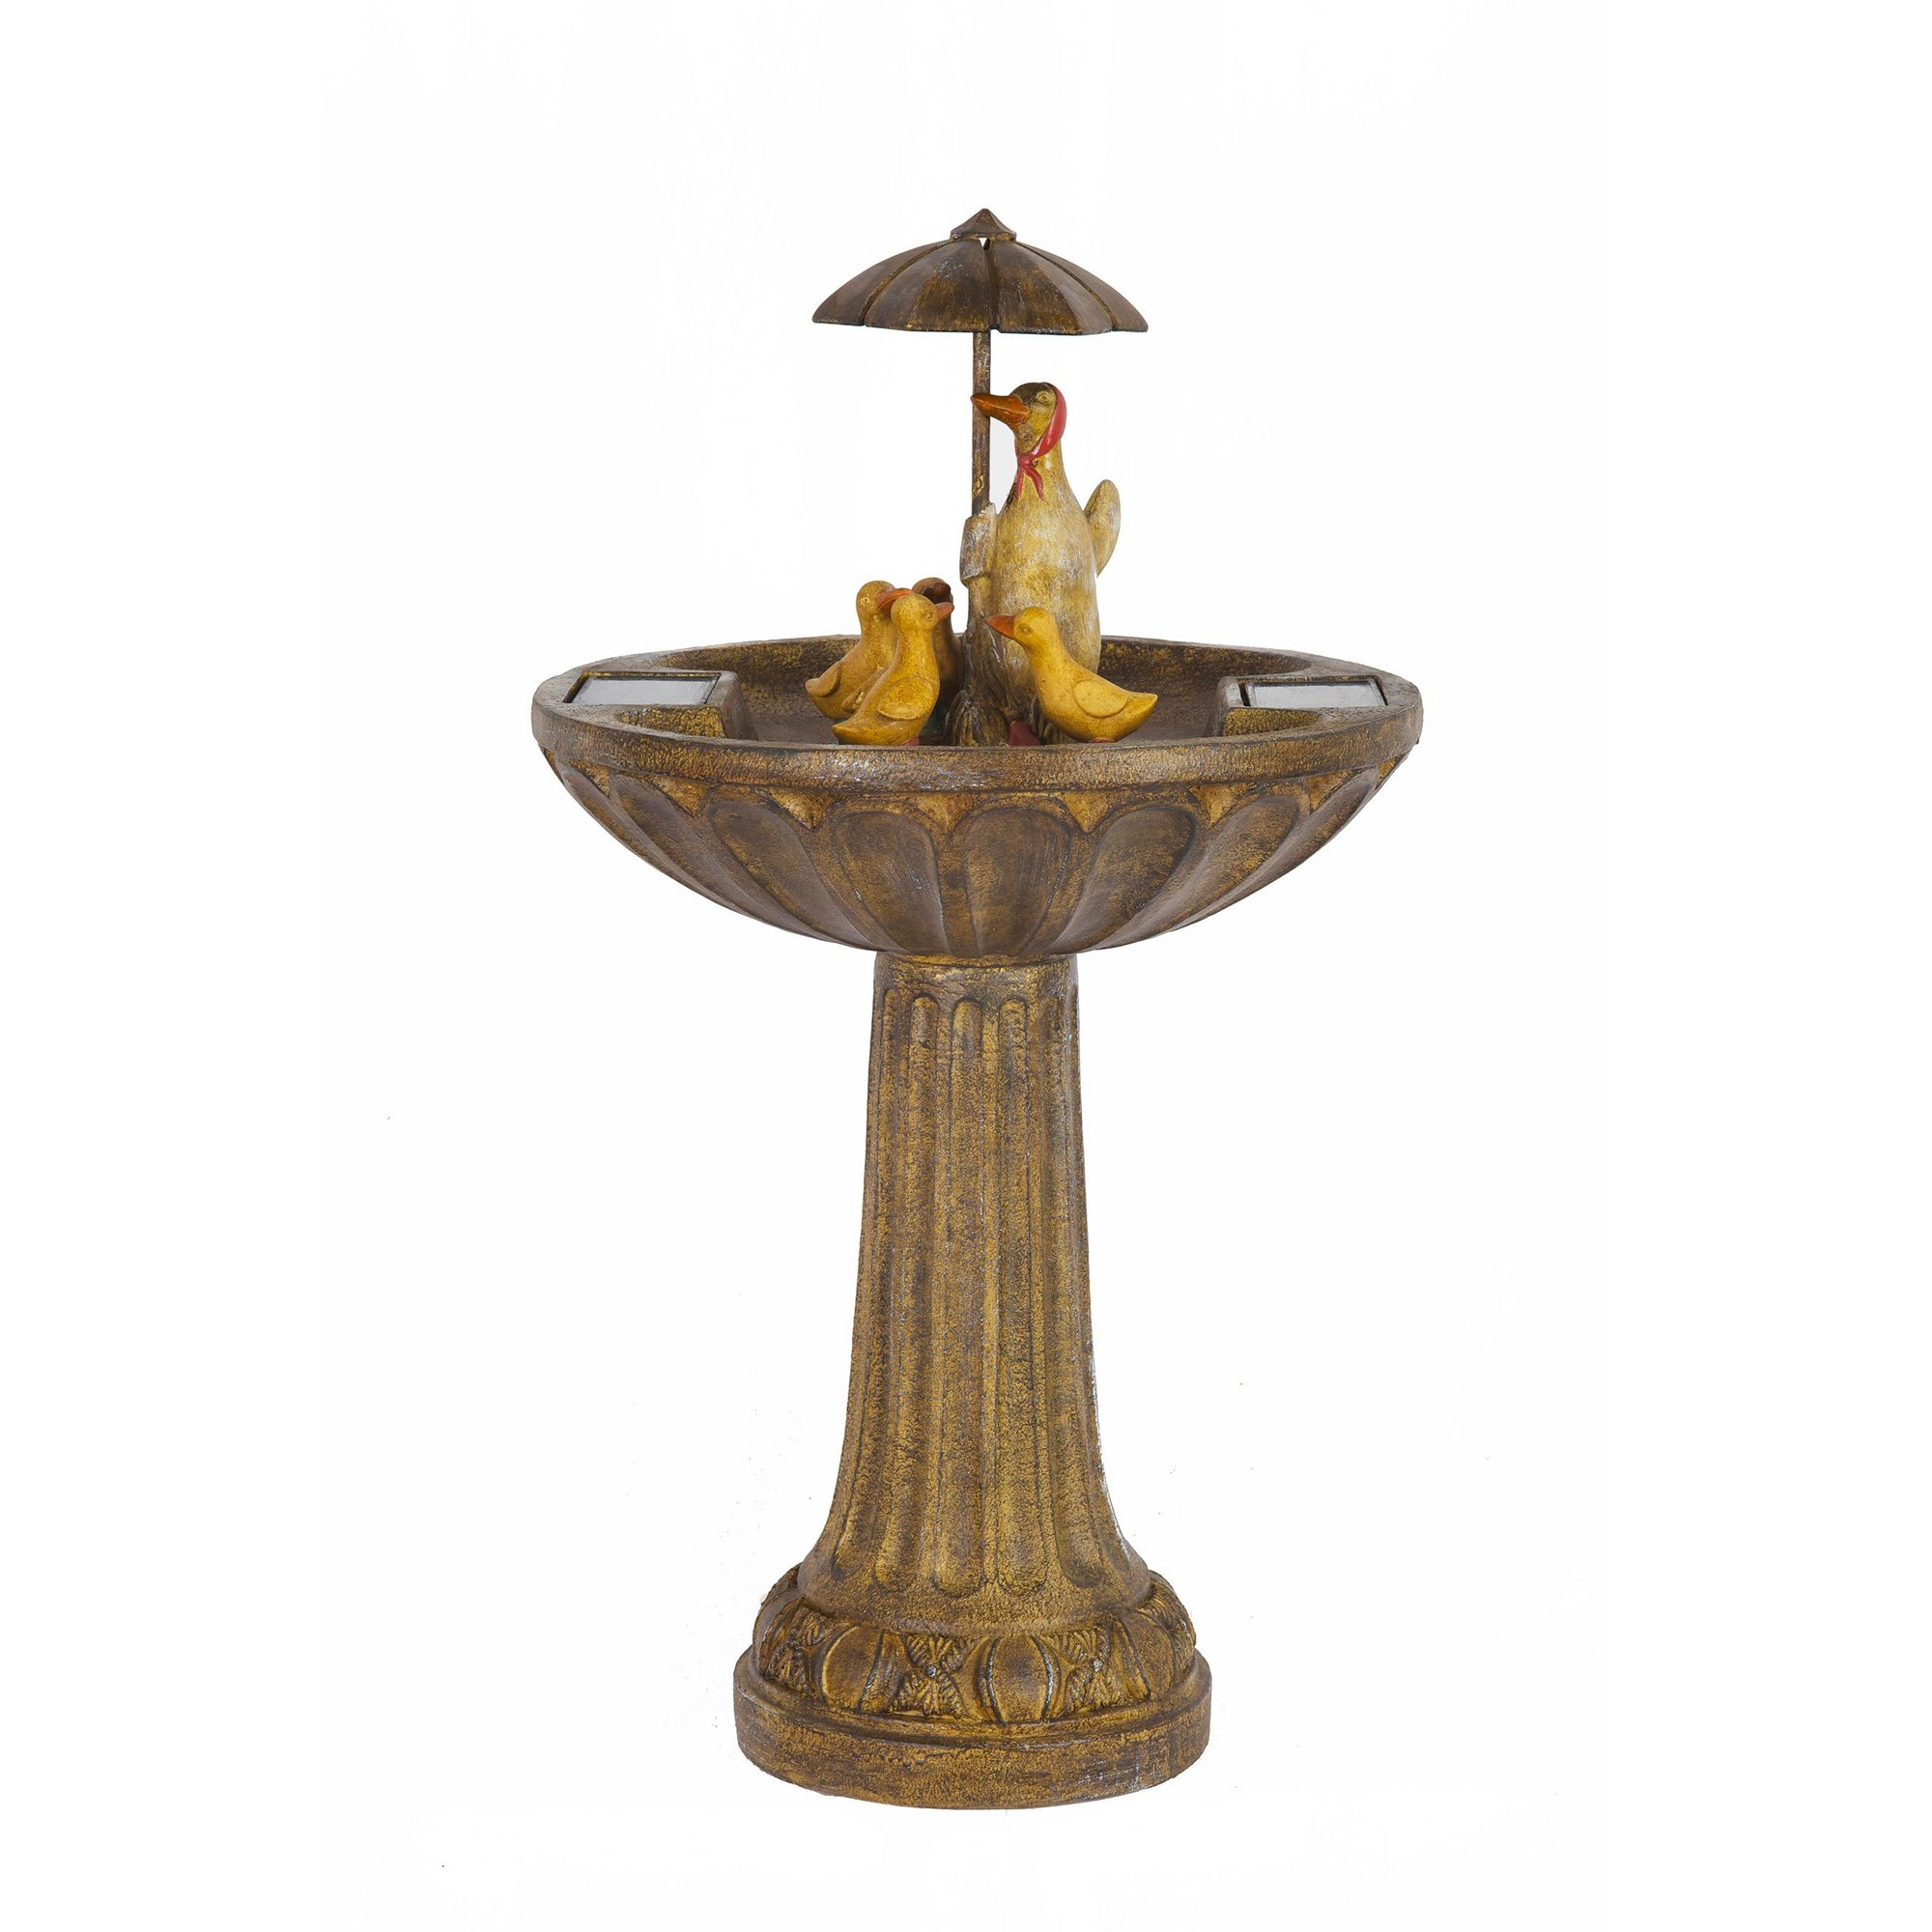 Image of Duck Family Solar Water Feature